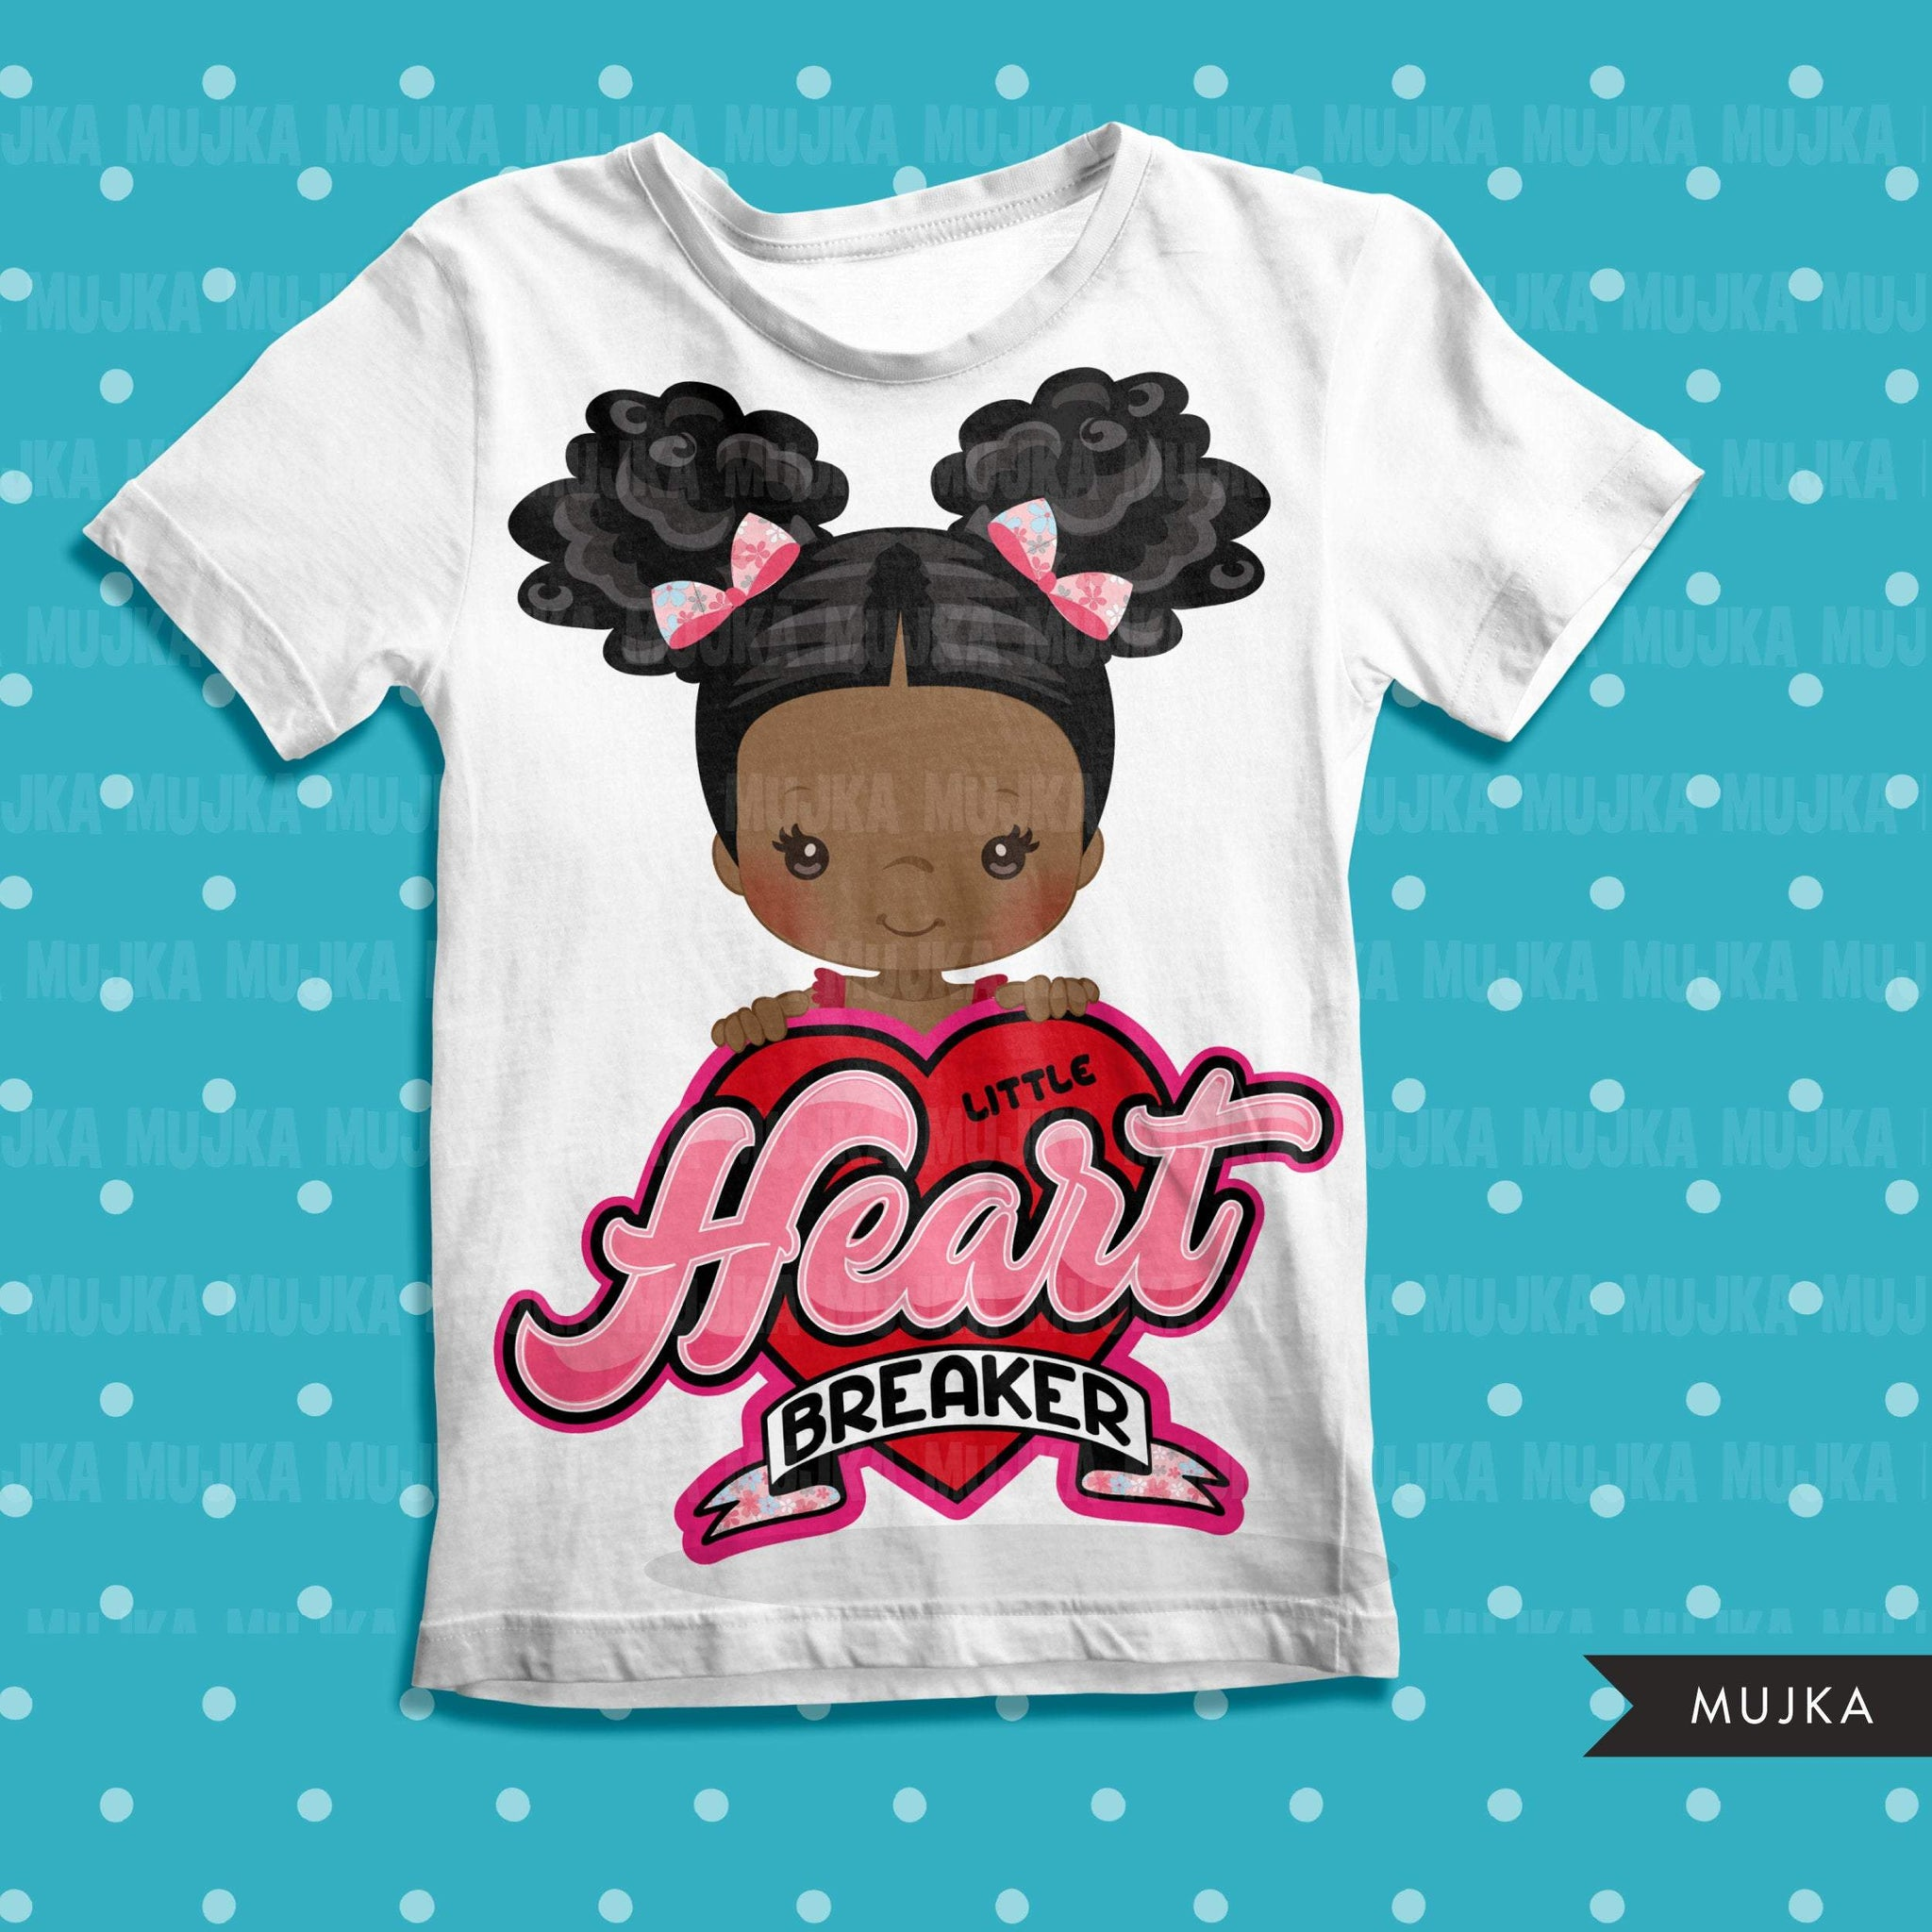 valentines day png digital little heart breaker sublimation image transfer clipart t-shirt graphics little black girl